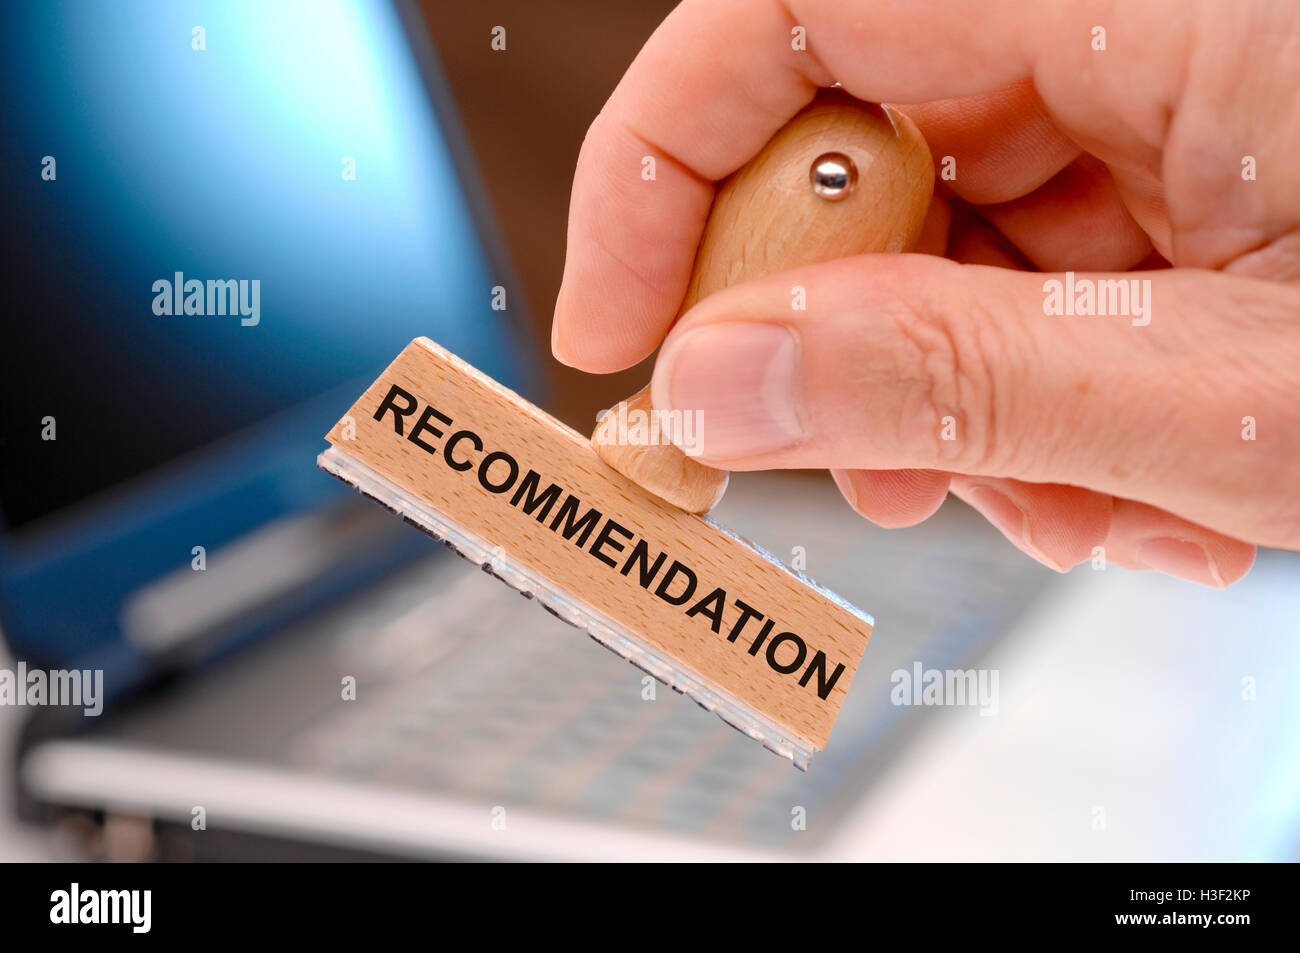 recommendation printed on rubber stamp in hand - Stock Image